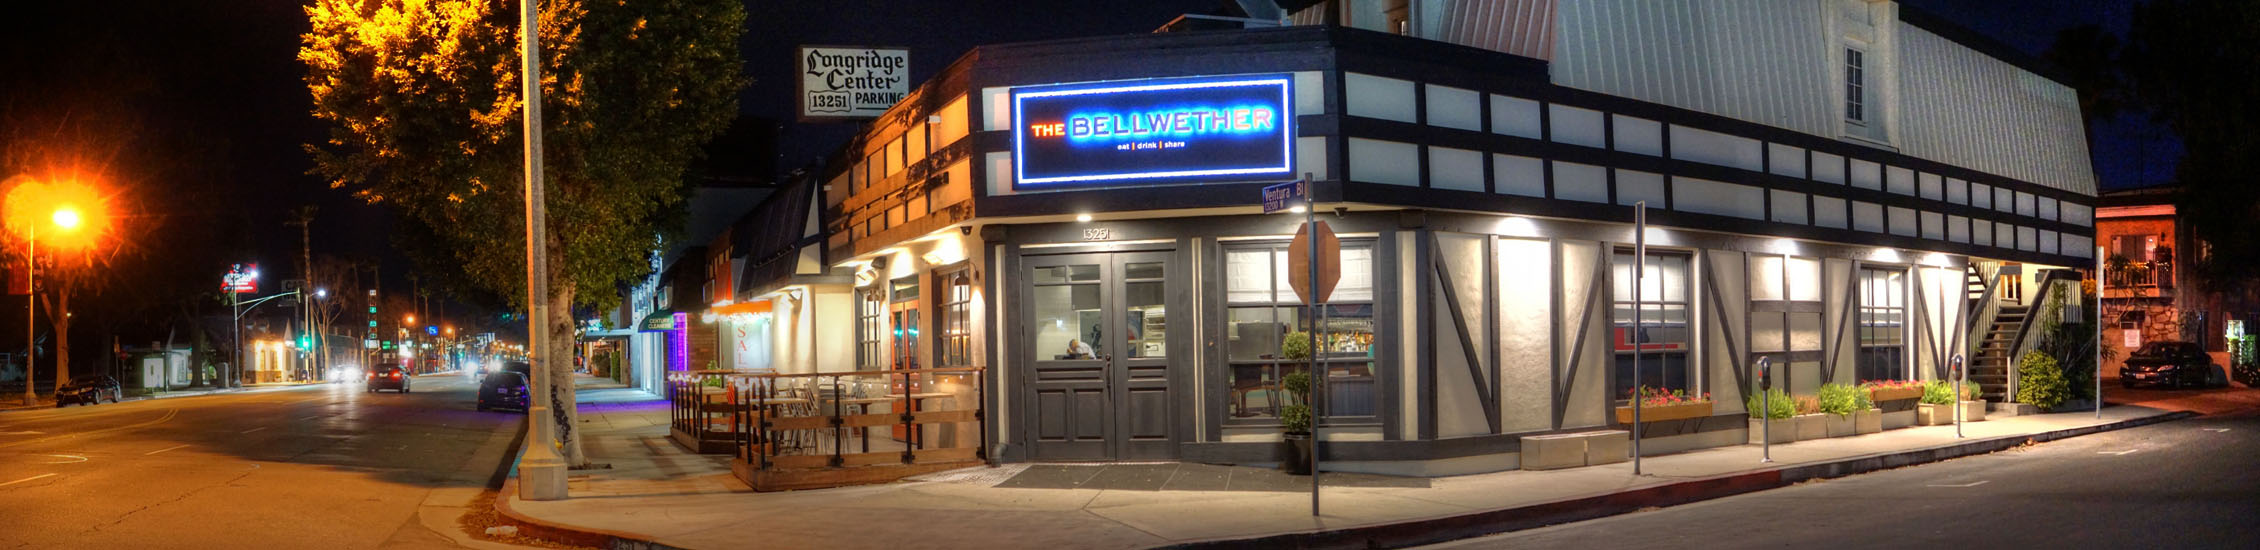 The Bellwether Exterior